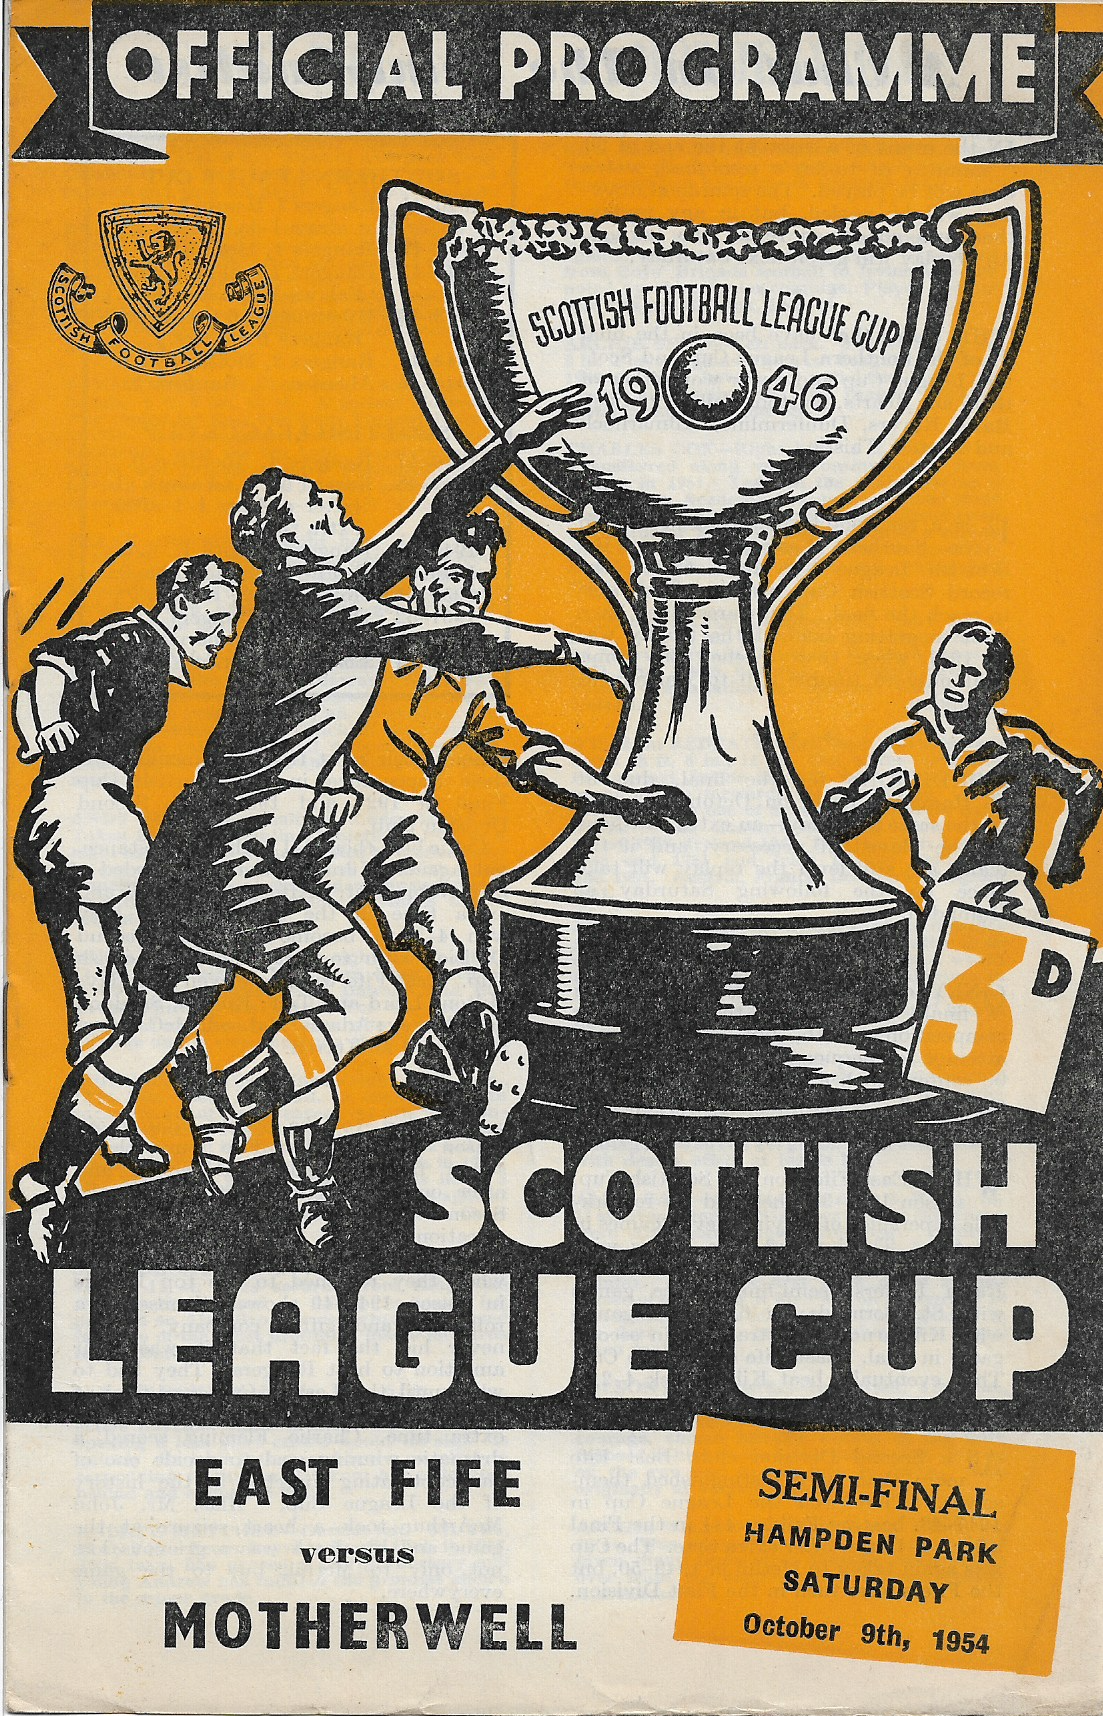 League Cup Semi Final Programme Cover vs East Fife